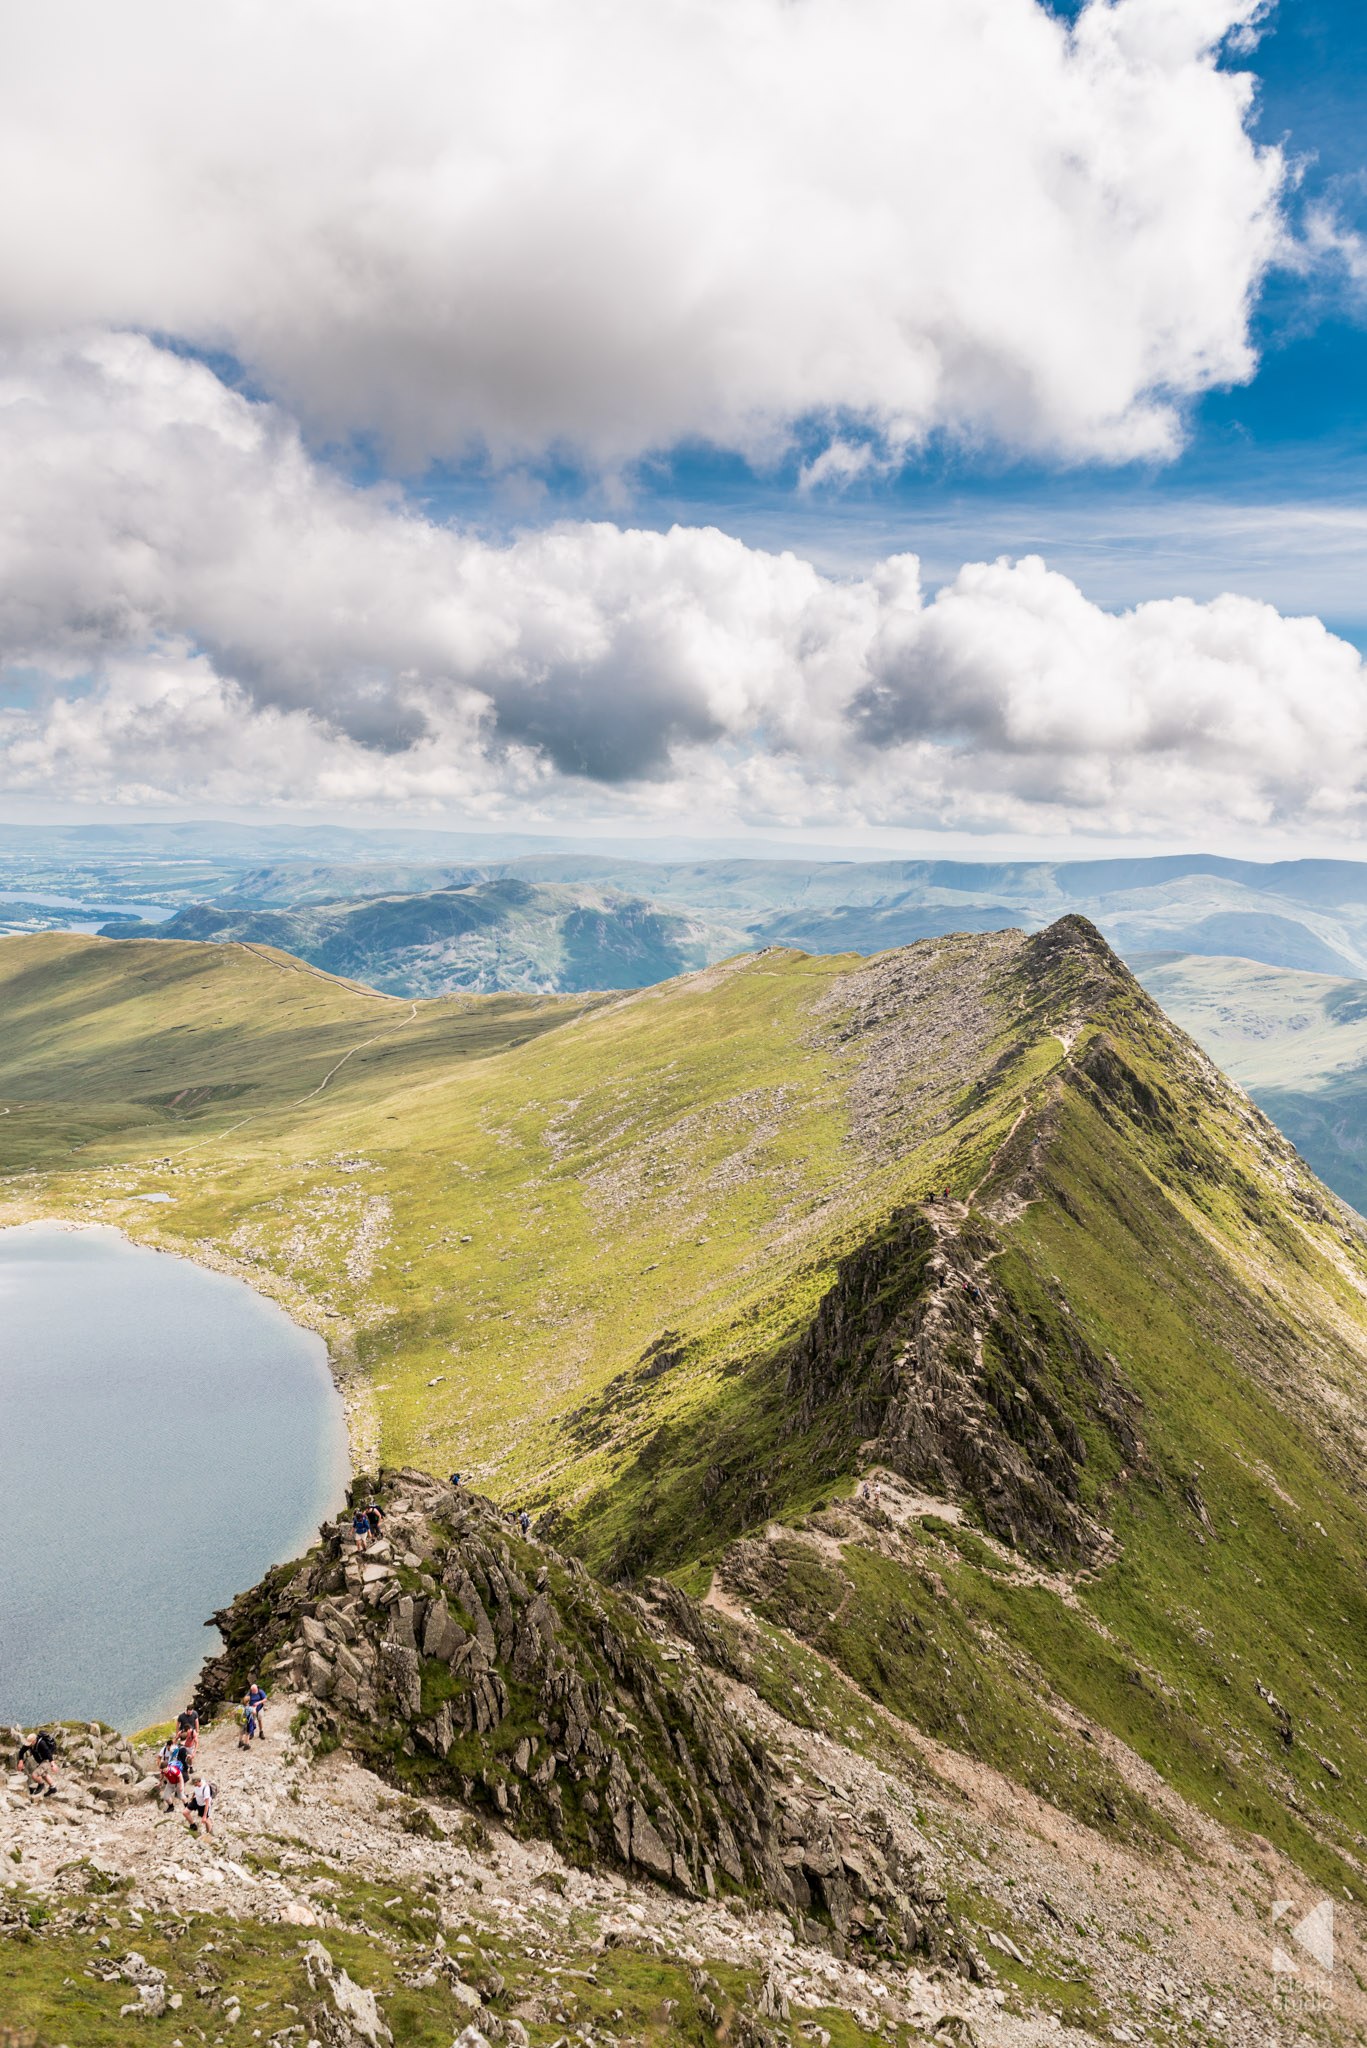 From Hellvellyn to Striding Edge and Red Tarn